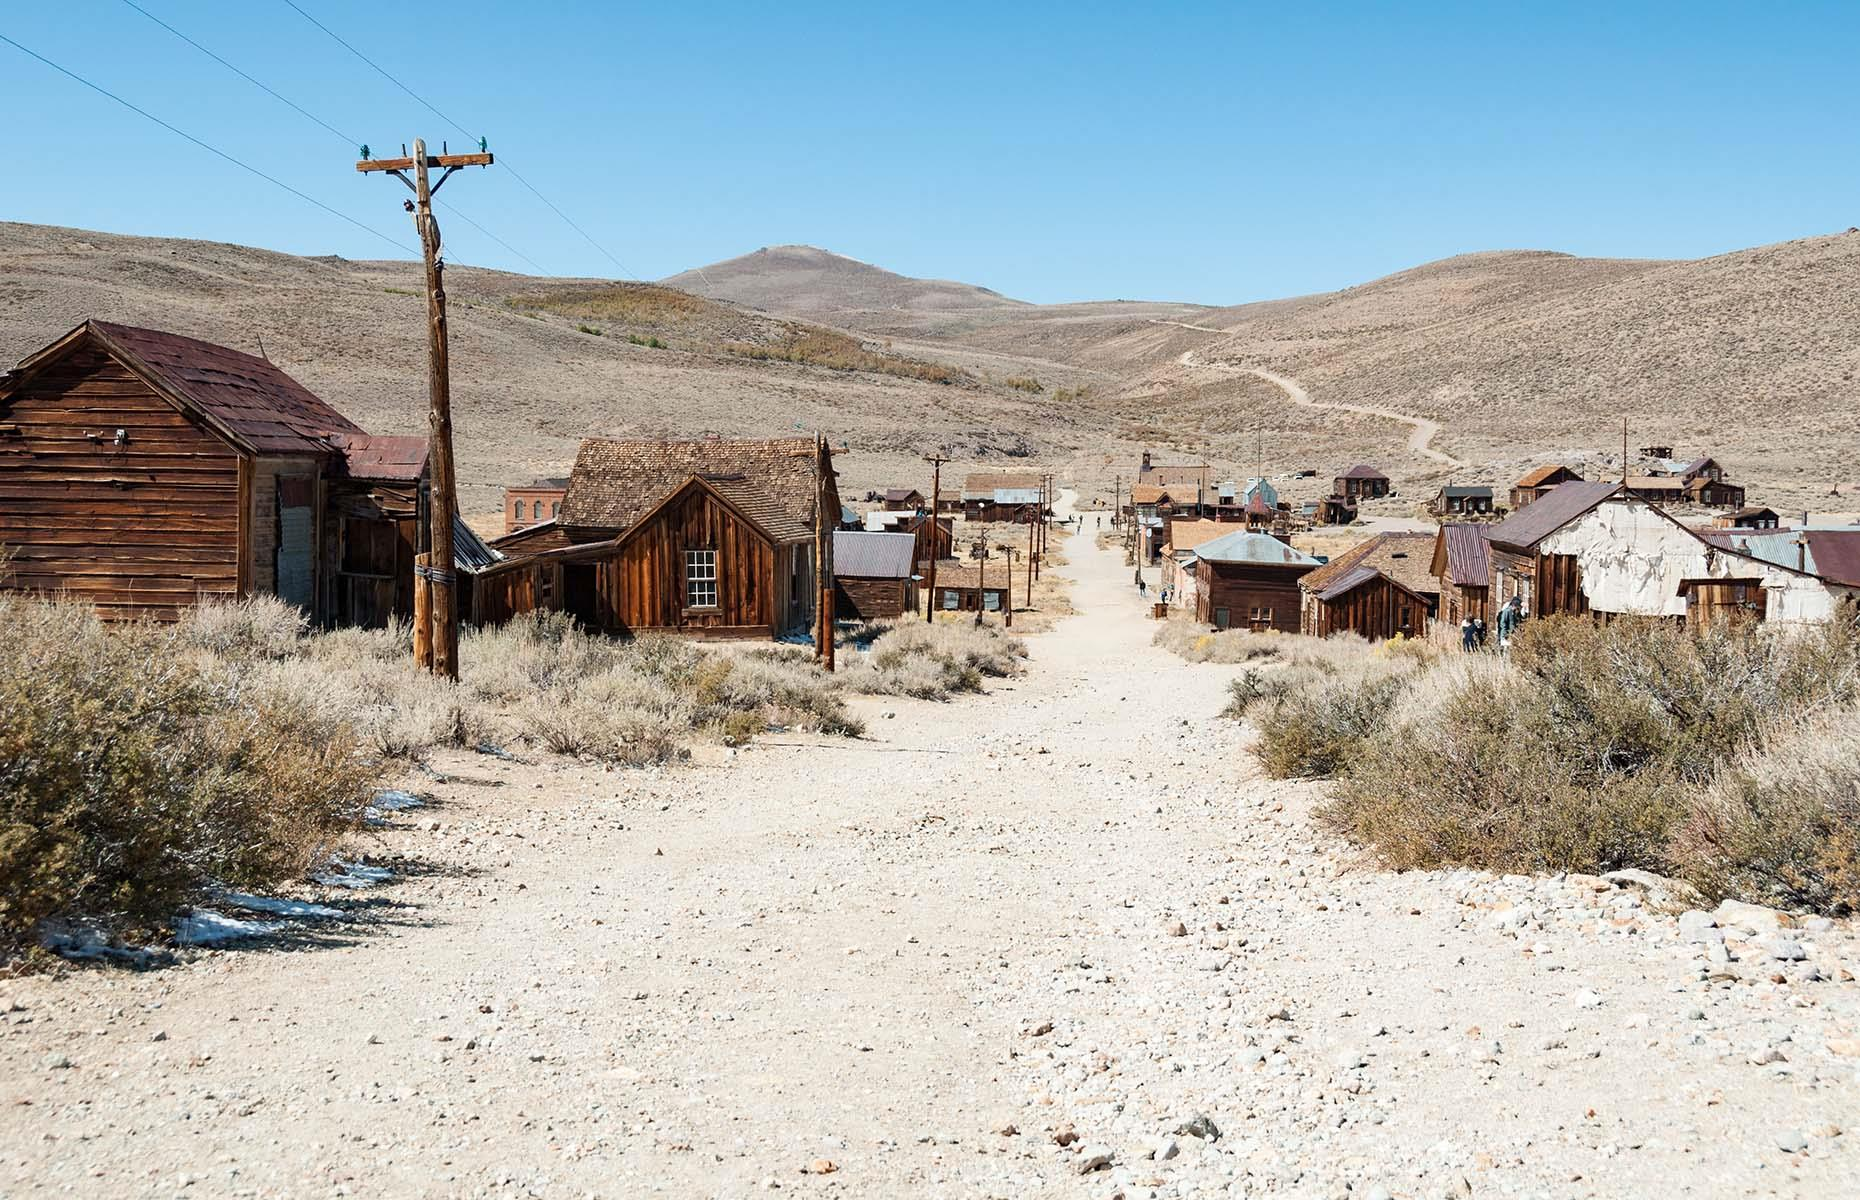 Slide 20 of 46: Perhaps the best-known Gold Rush ghost town in all of America, Bodie has attracted travelers and photographers for years. In its heyday, this California gold mining town had 10,000 inhabitants and 65 saloons, gambling halls, opium dens and brothels. The frequent outbreaks of violence and murders earned Bodie the dubious reputation as the most lawless mining camp in the far west.